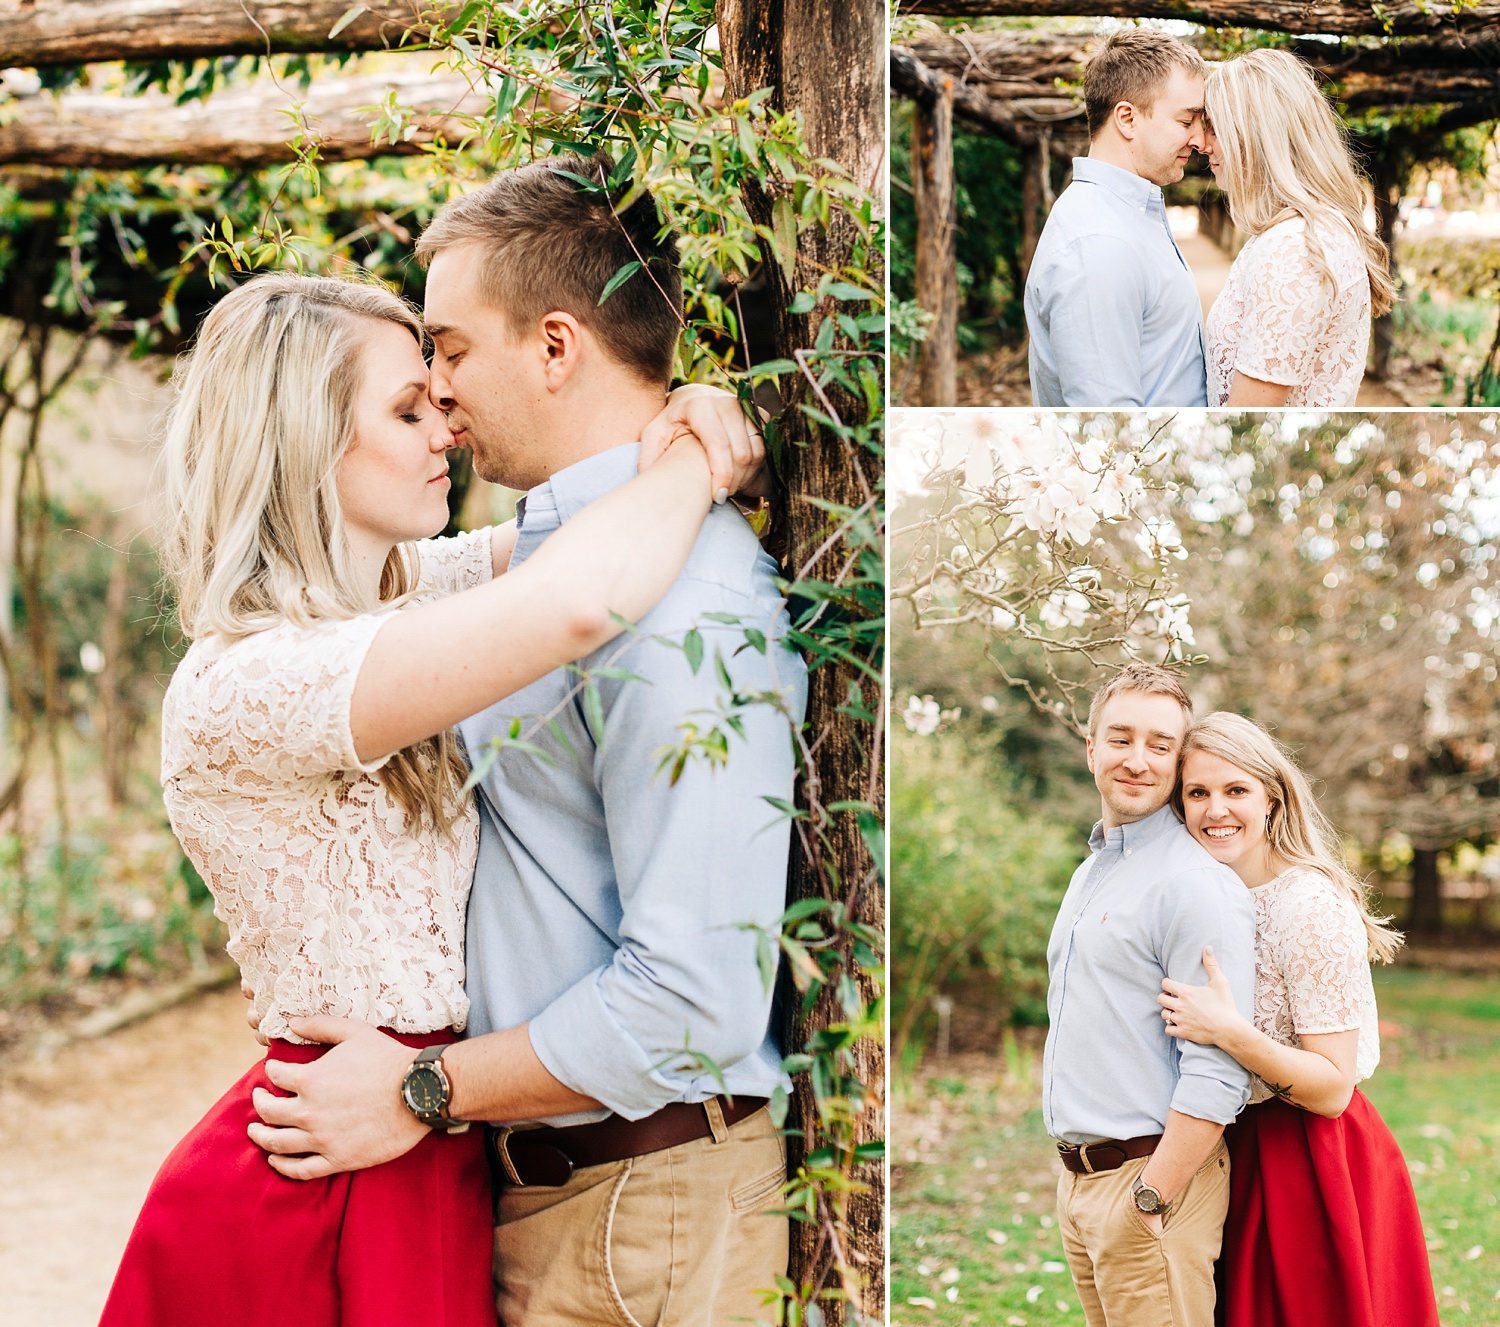 engagement session under the arbor at coker arboretum by rachael bowman photography